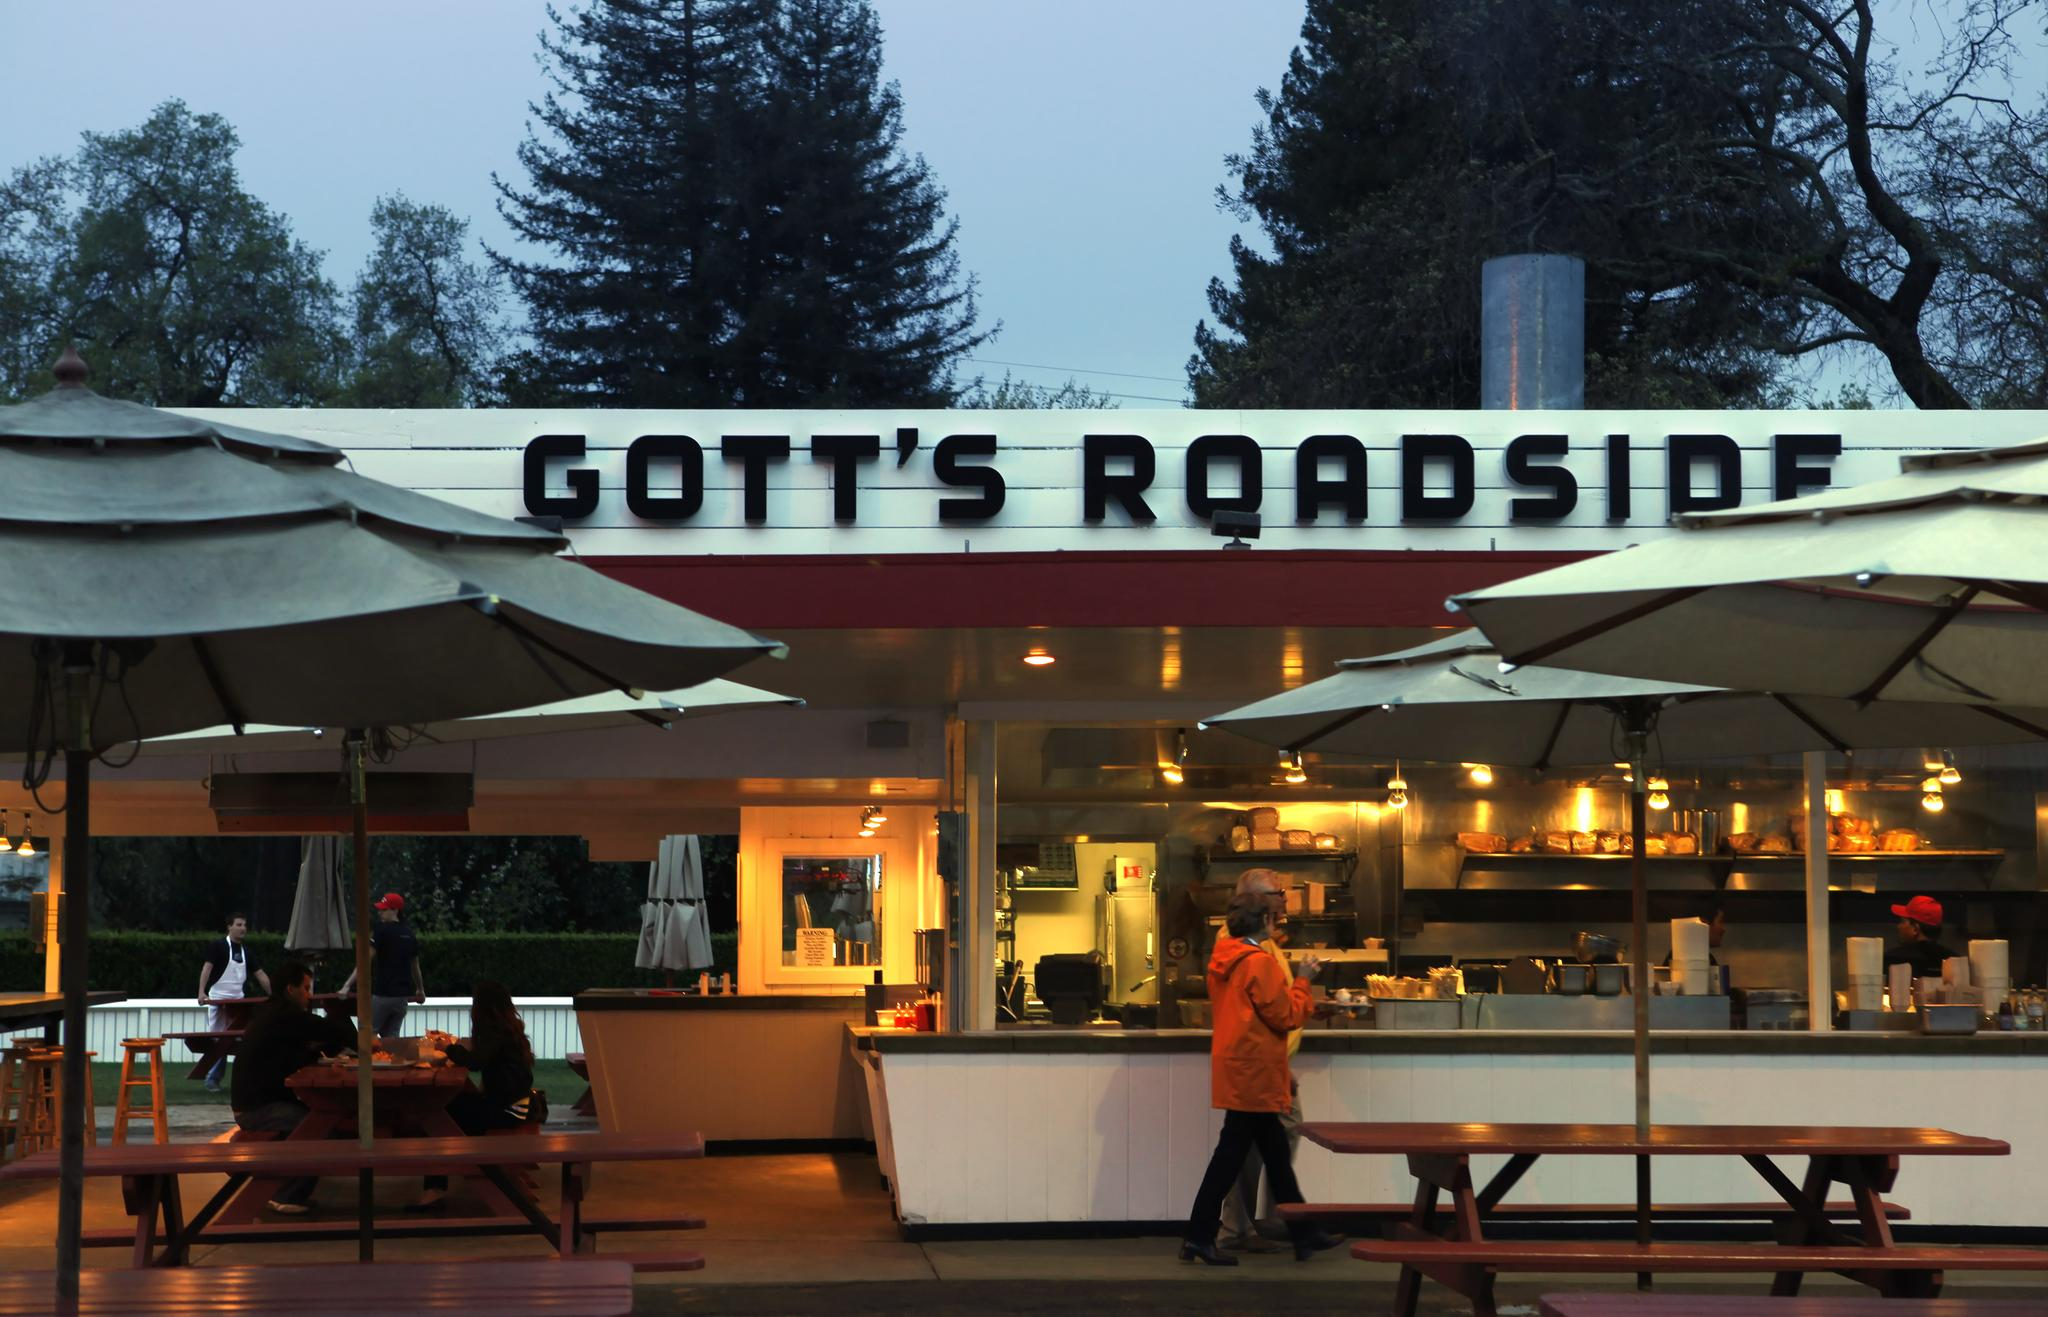 Gott's Roadside - best burgers in the Valley.